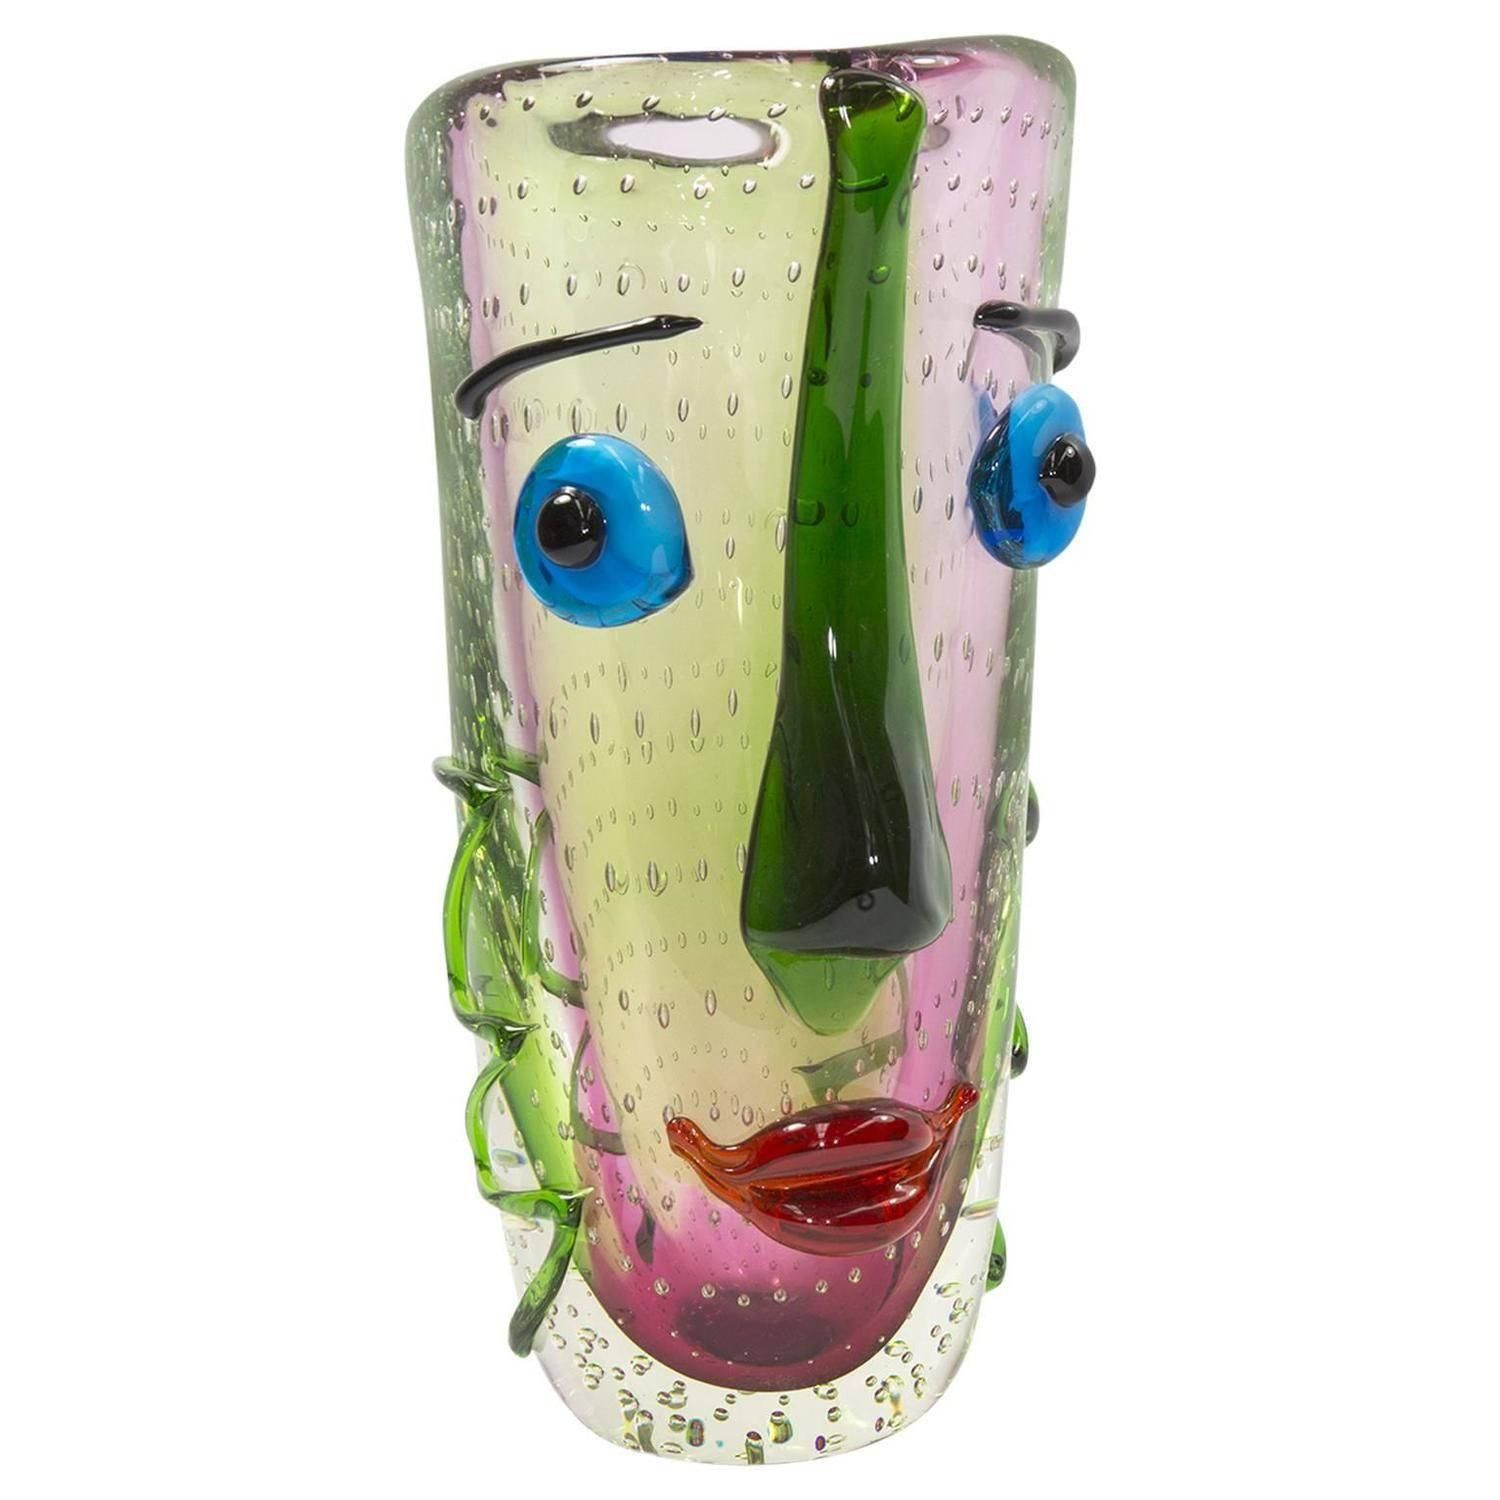 tall black vases for sale of fabulous large murano multicolored abstract picasso face art glass in fabulous large murano multicolored abstract picasso face art glass vase